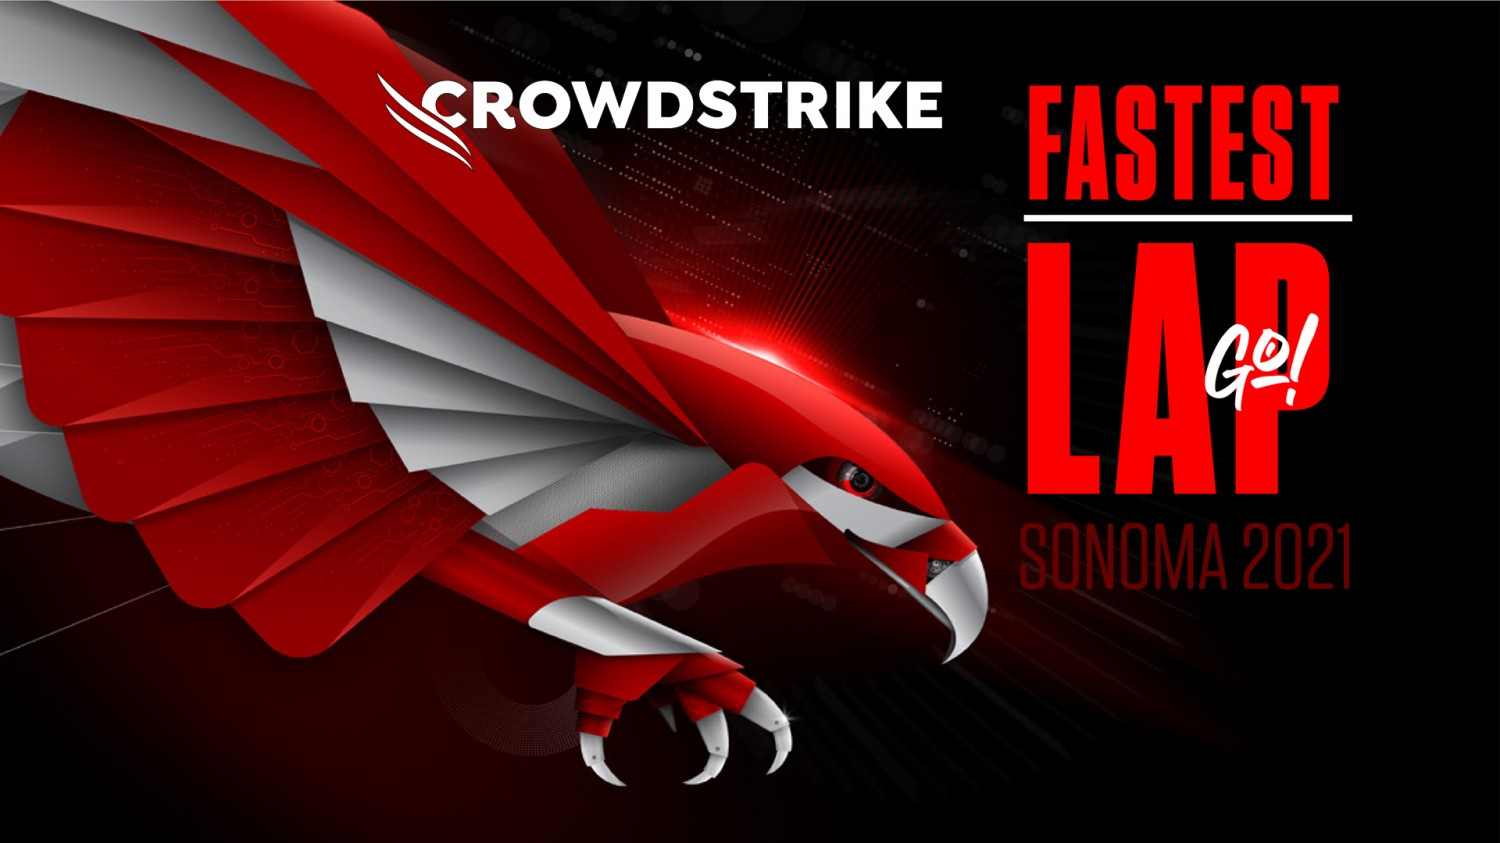 CrowdStrike Fastest Lap Award Returns for a Second Season